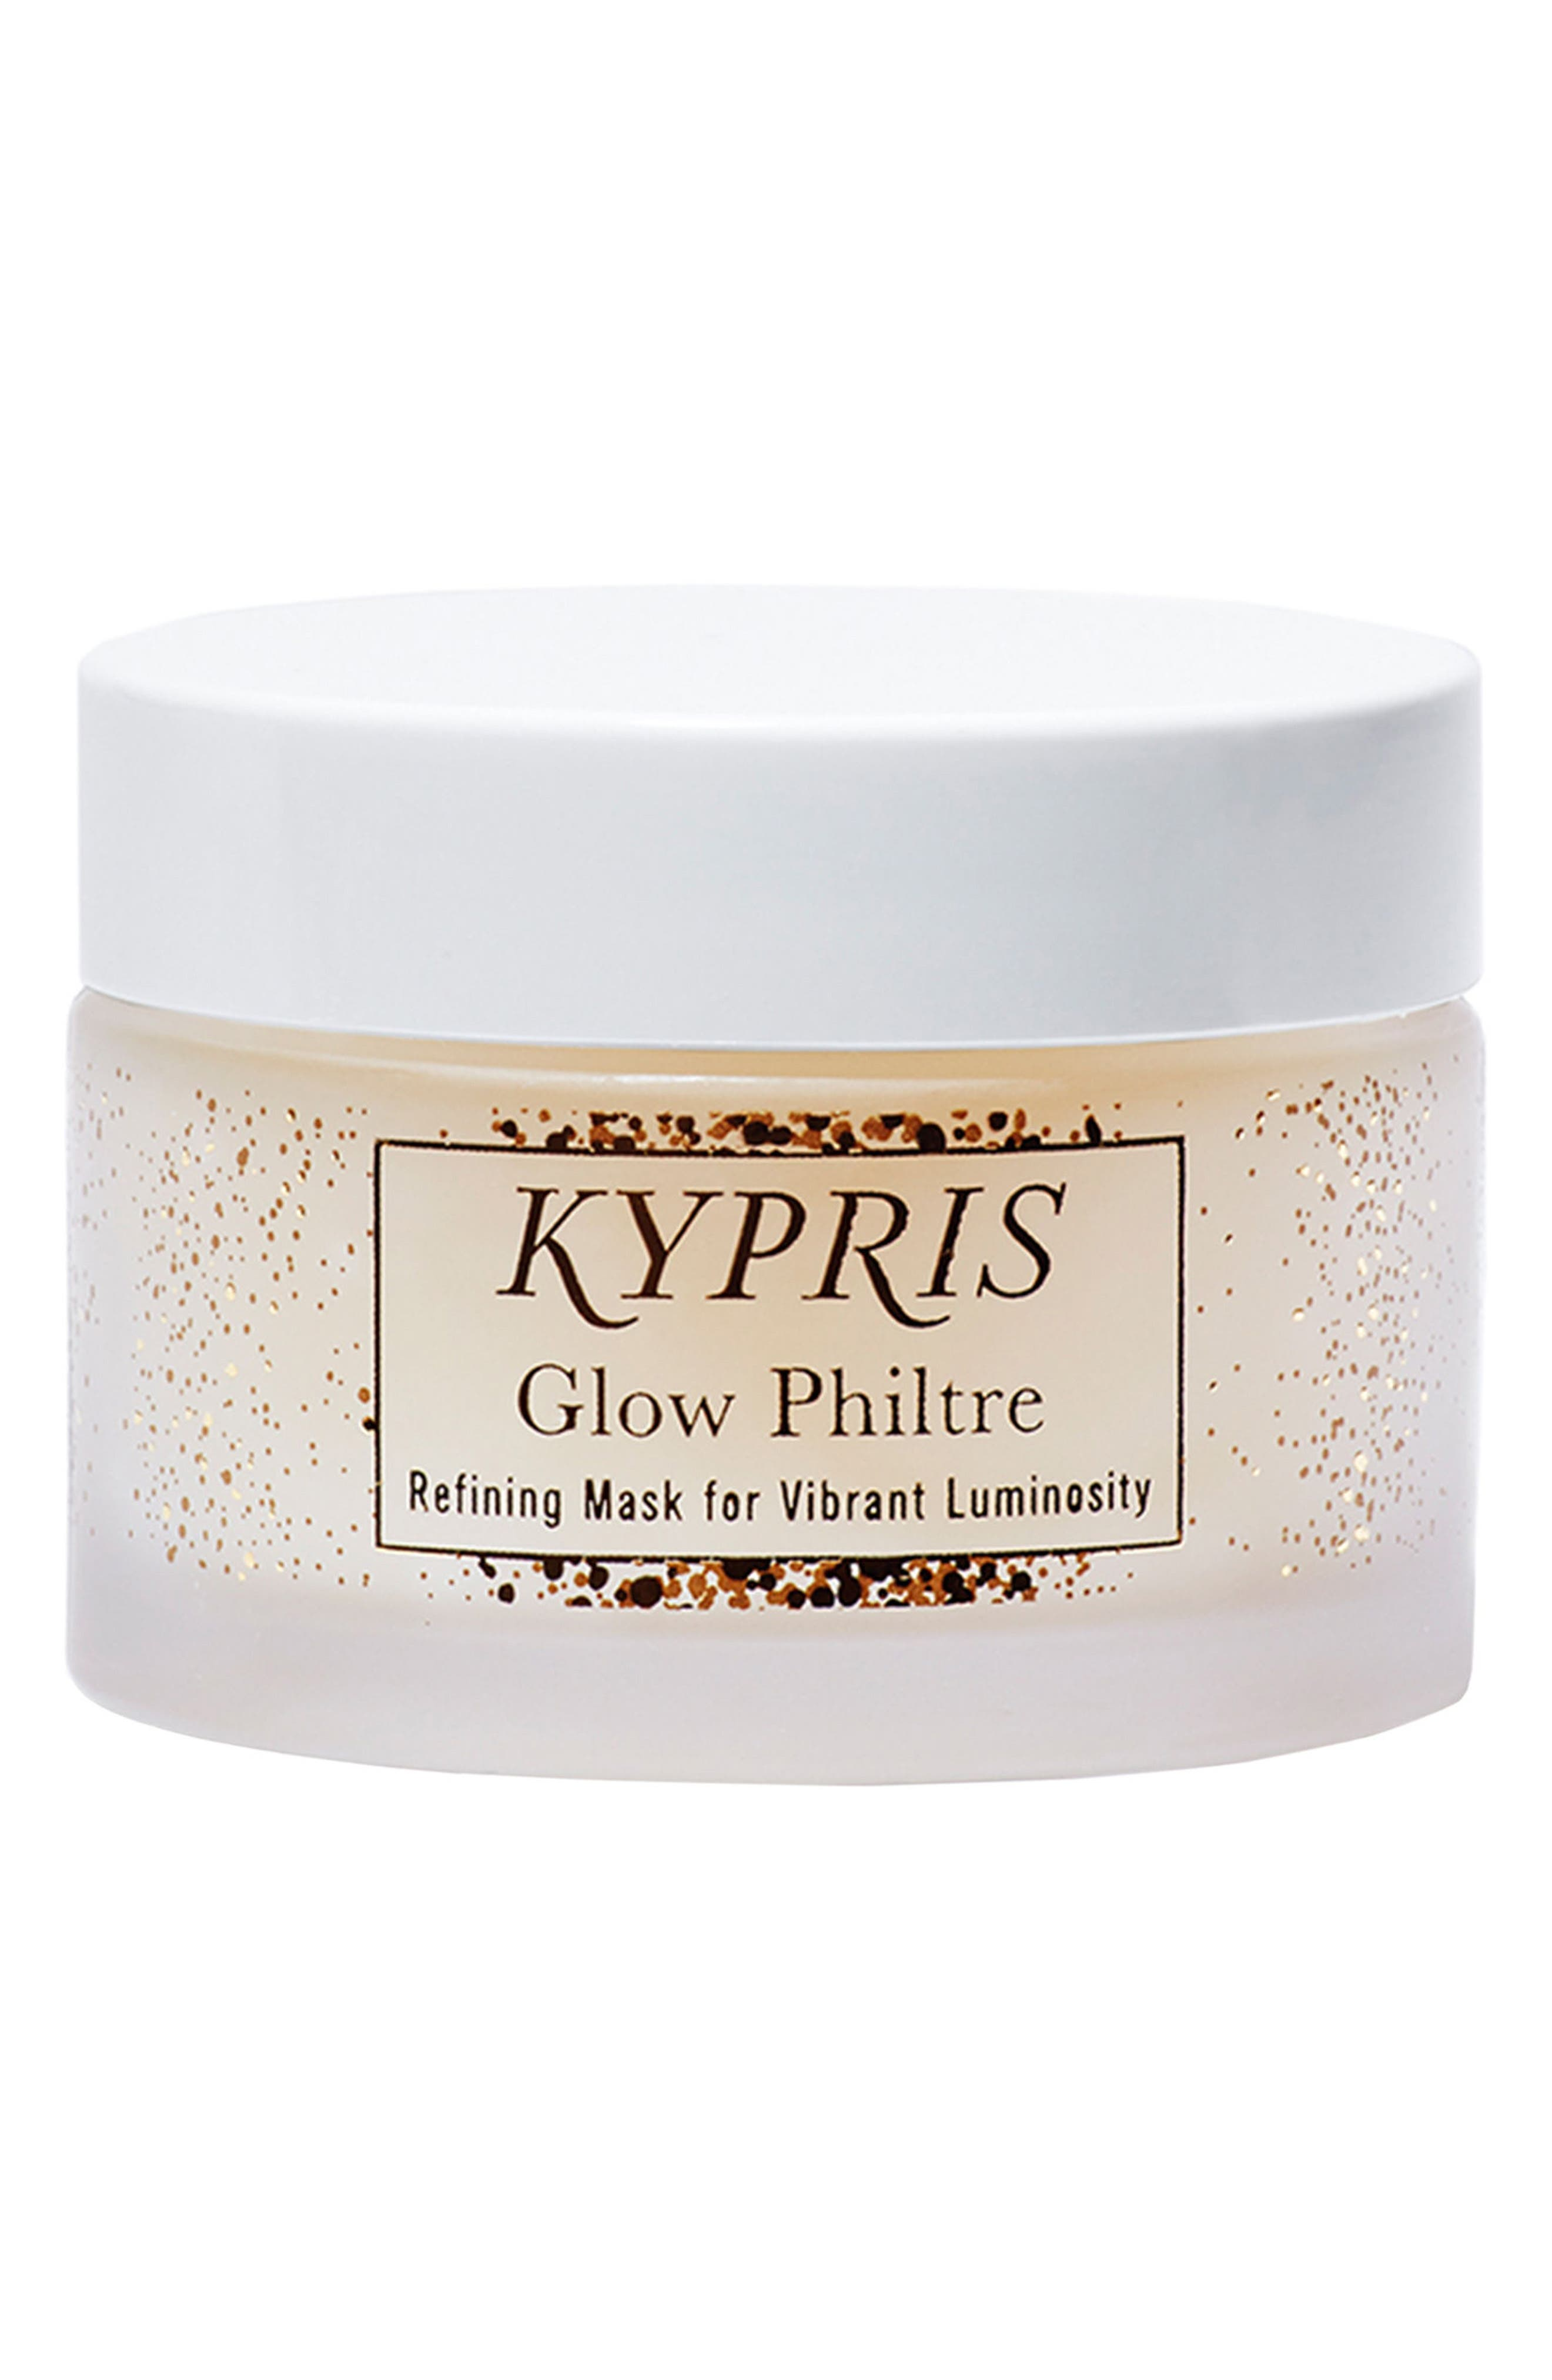 Glow Philtre Refining Mask for Vibrant Luminosity,                             Main thumbnail 1, color,                             NO COLOR